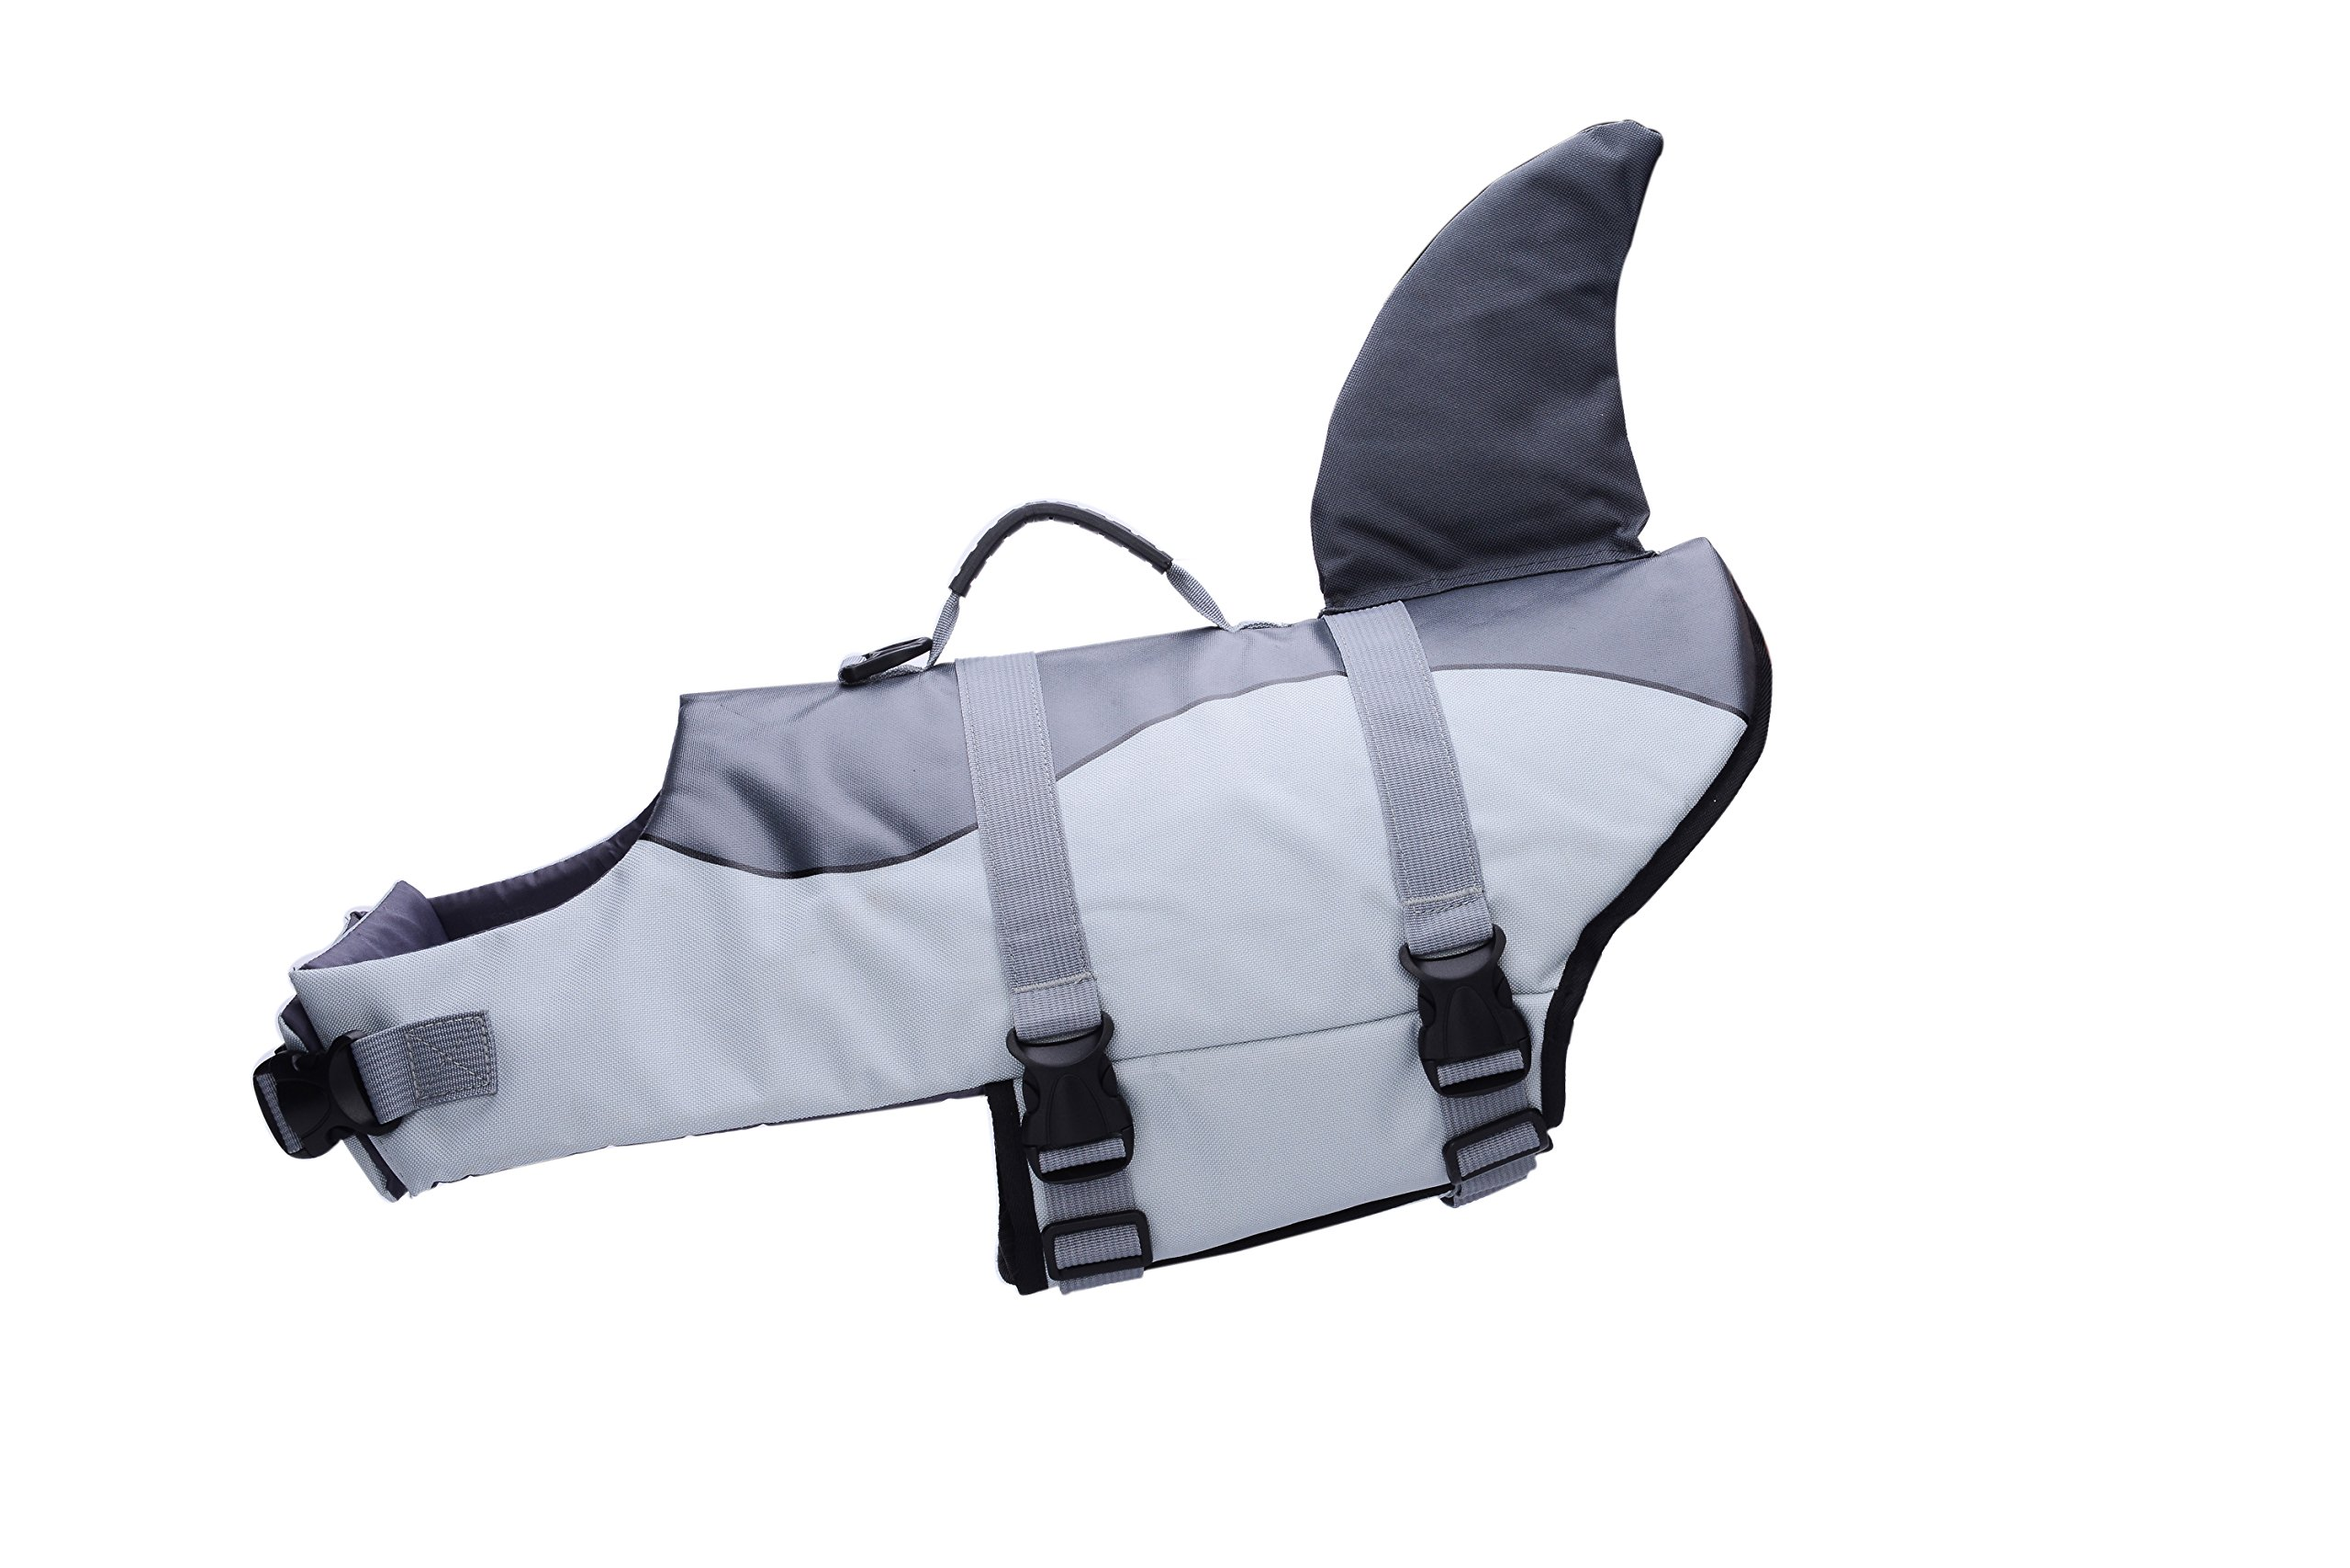 BFLIfe Dog Life Jacket Small Shark Pet Swimming Vest for Dogs by BFLIfe (Image #4)